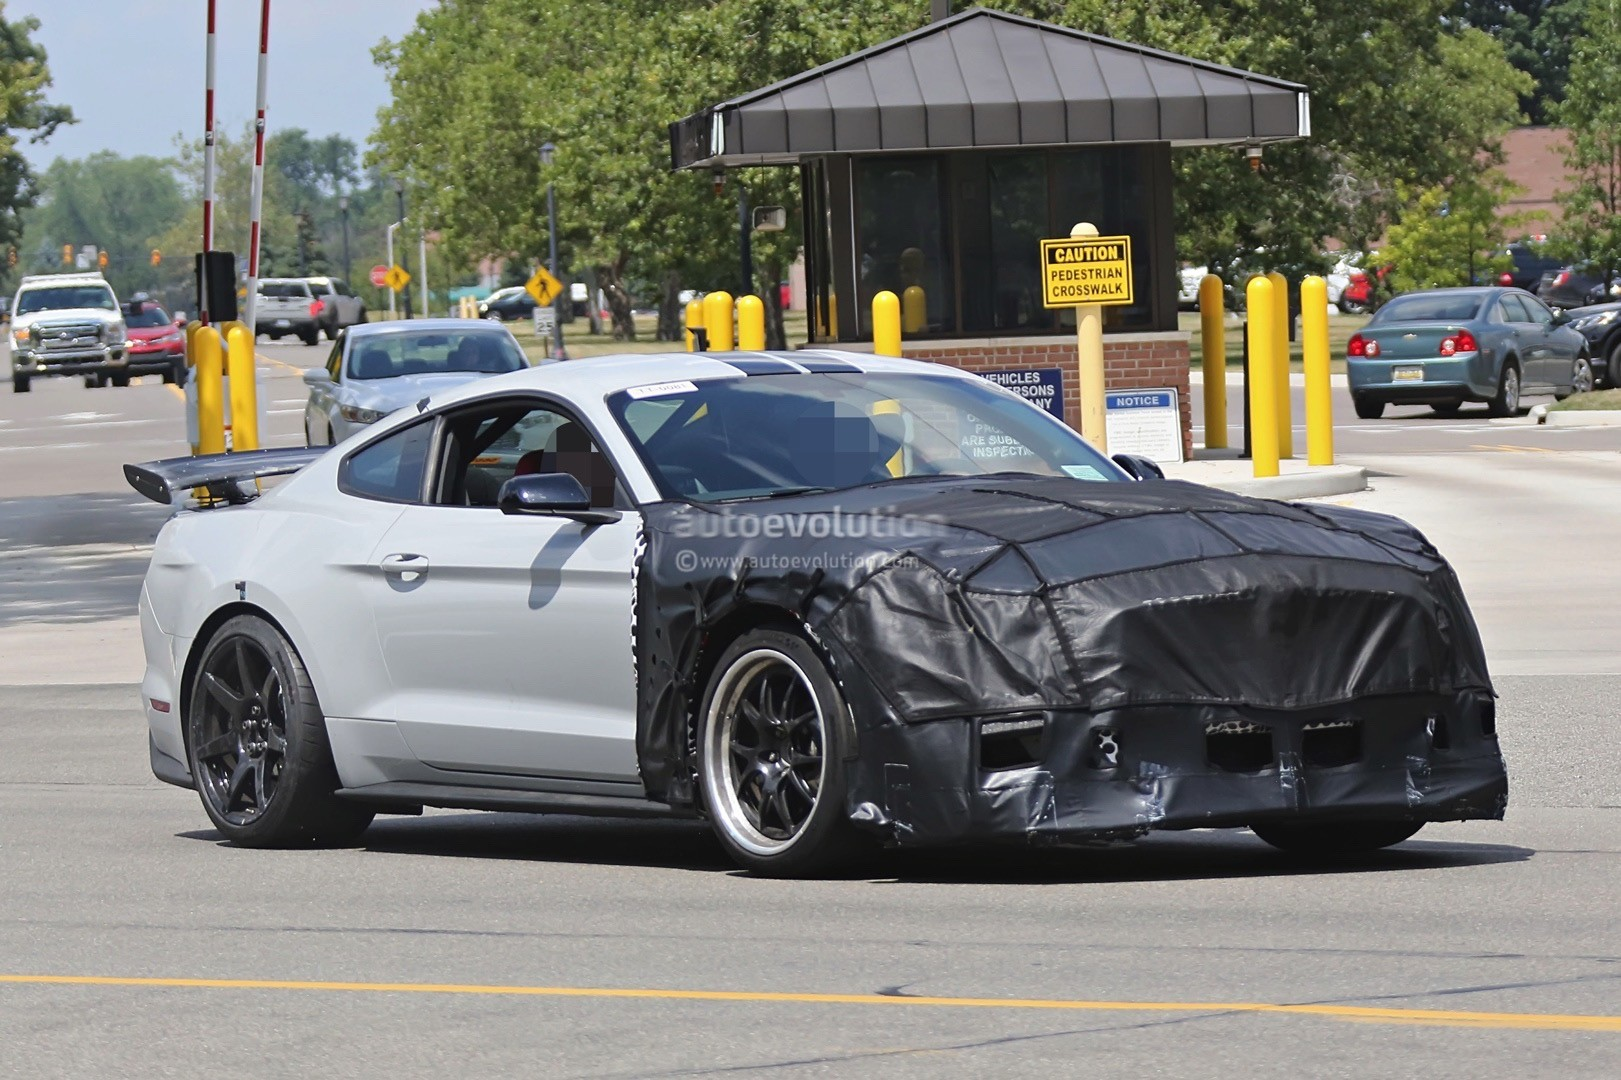 2018 Ford Mustang Shelby Gt500 Or Mach 1